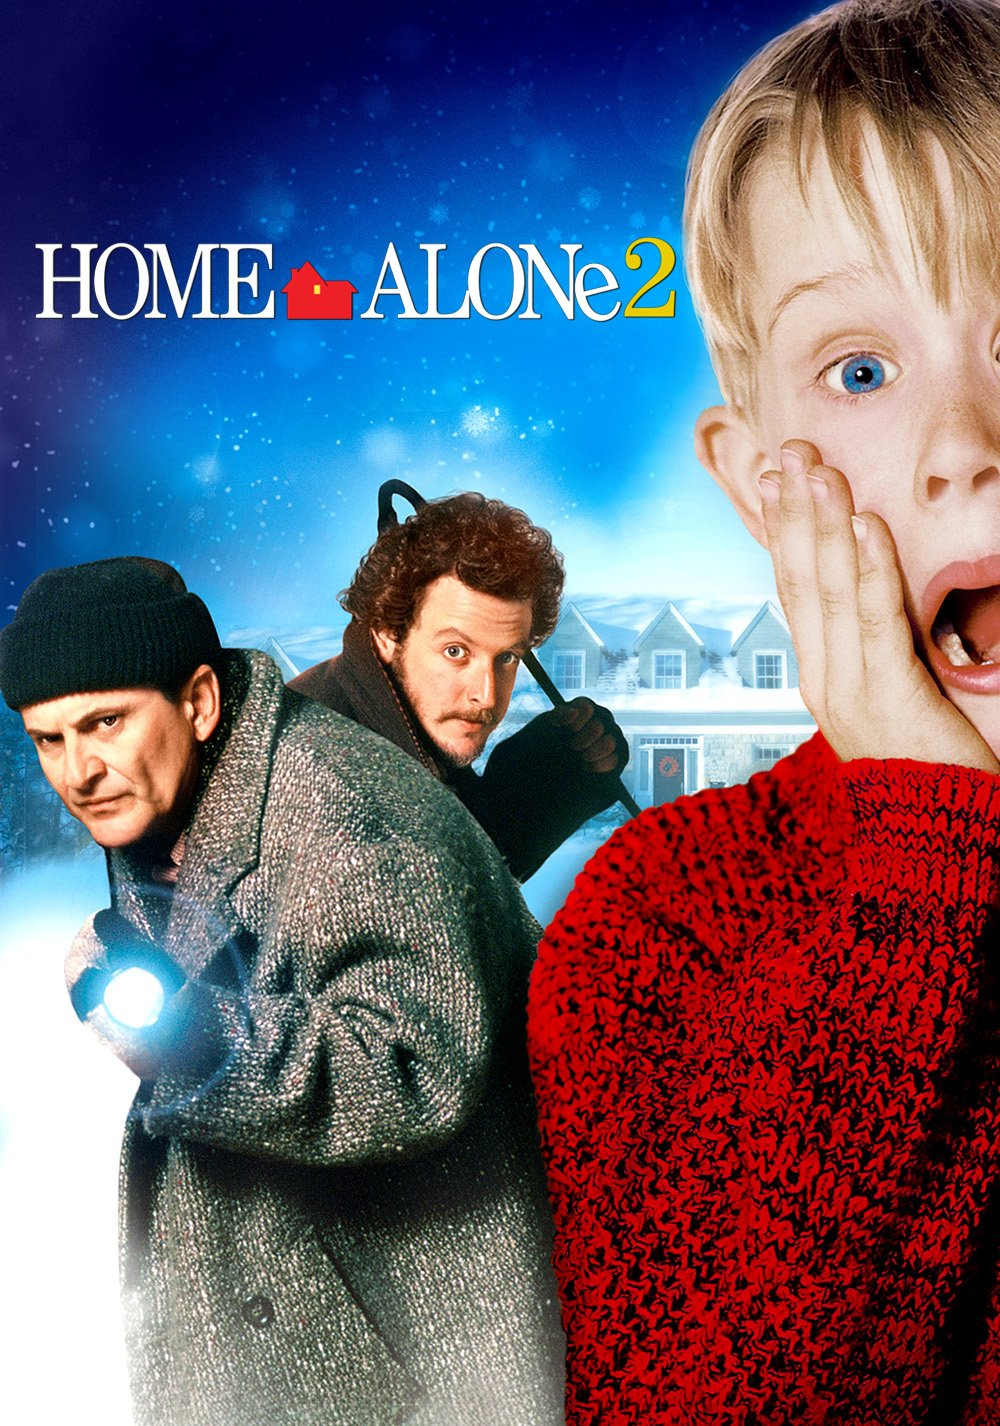 Home Alone 2 Lost In New York Movie Poster Id 97571 Image Abyss